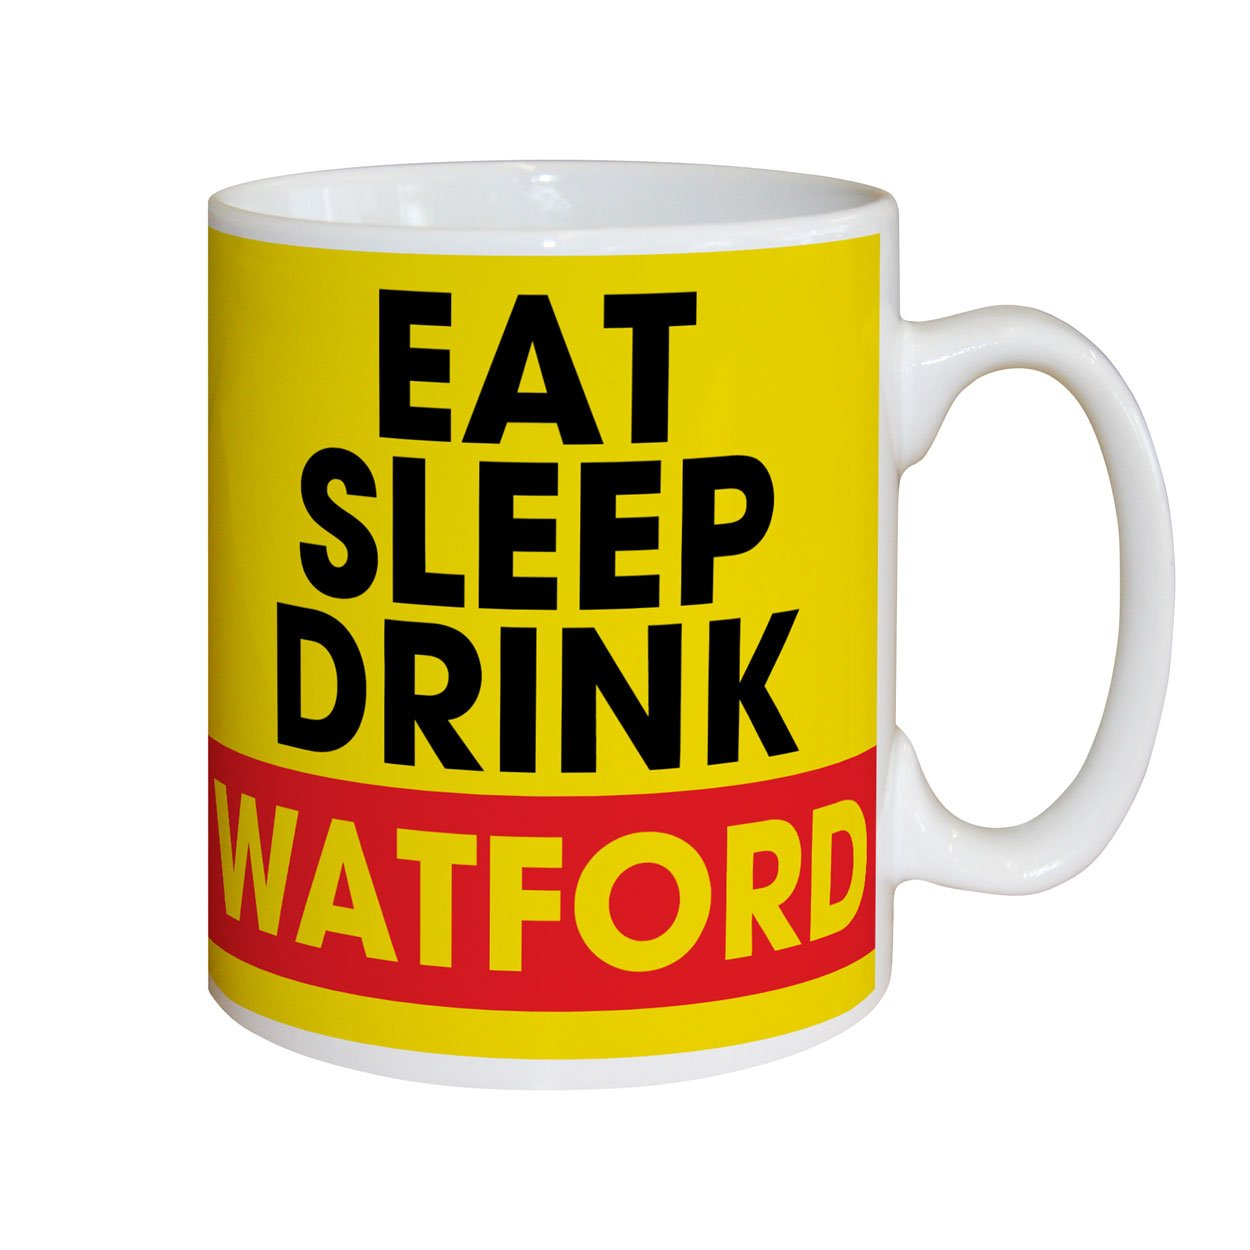 Watford FC Eat Sleep Drink Mugs, Gifts